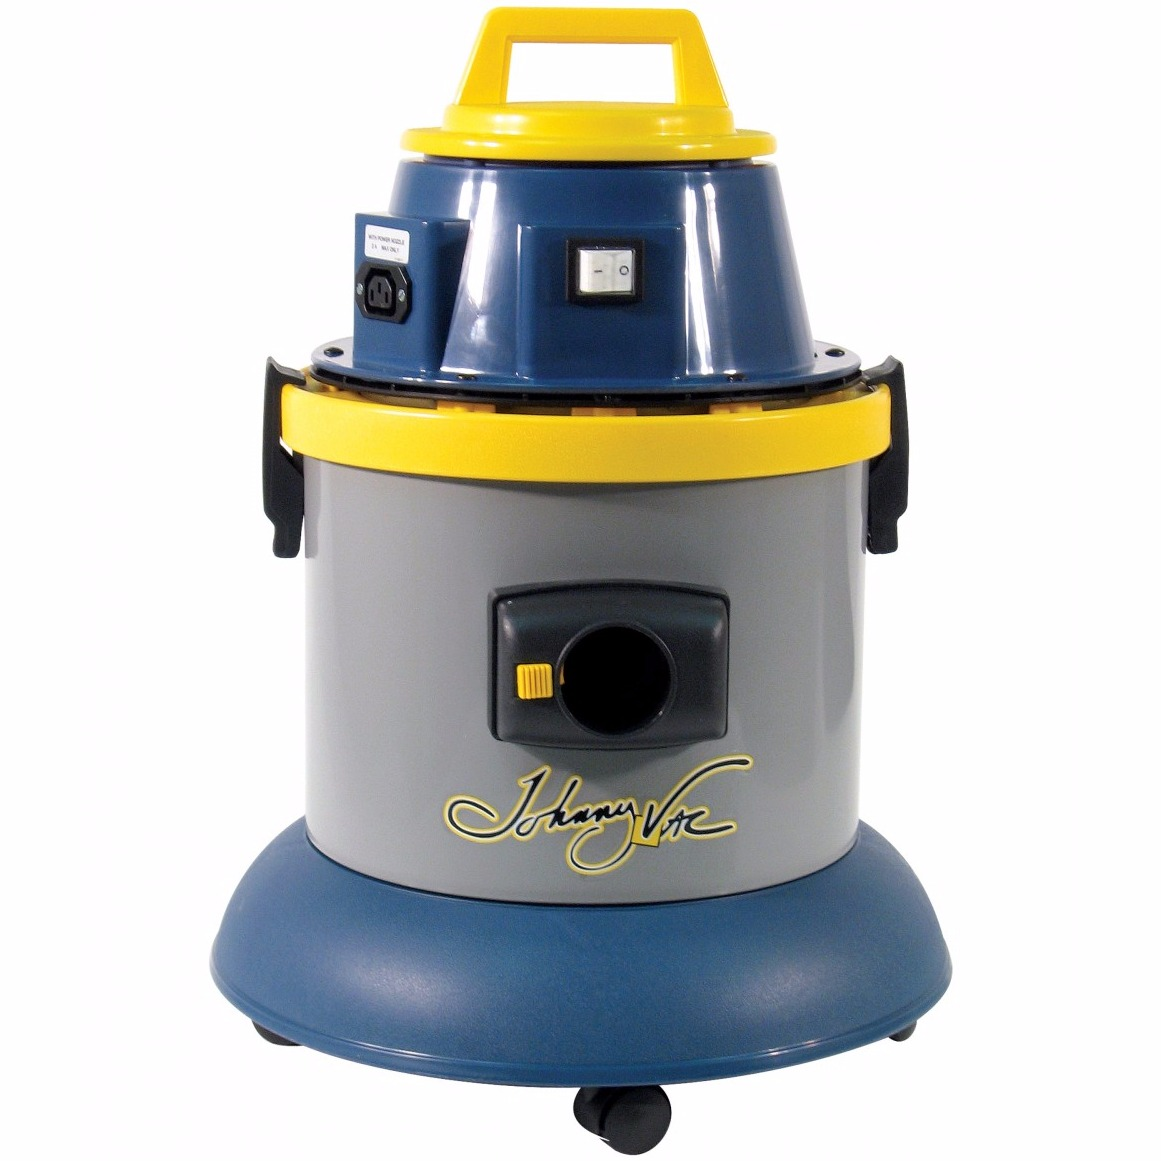 https://www.speedyvacuum.ca/public/uploads/products_photo/58e6920ae63b3.jpg